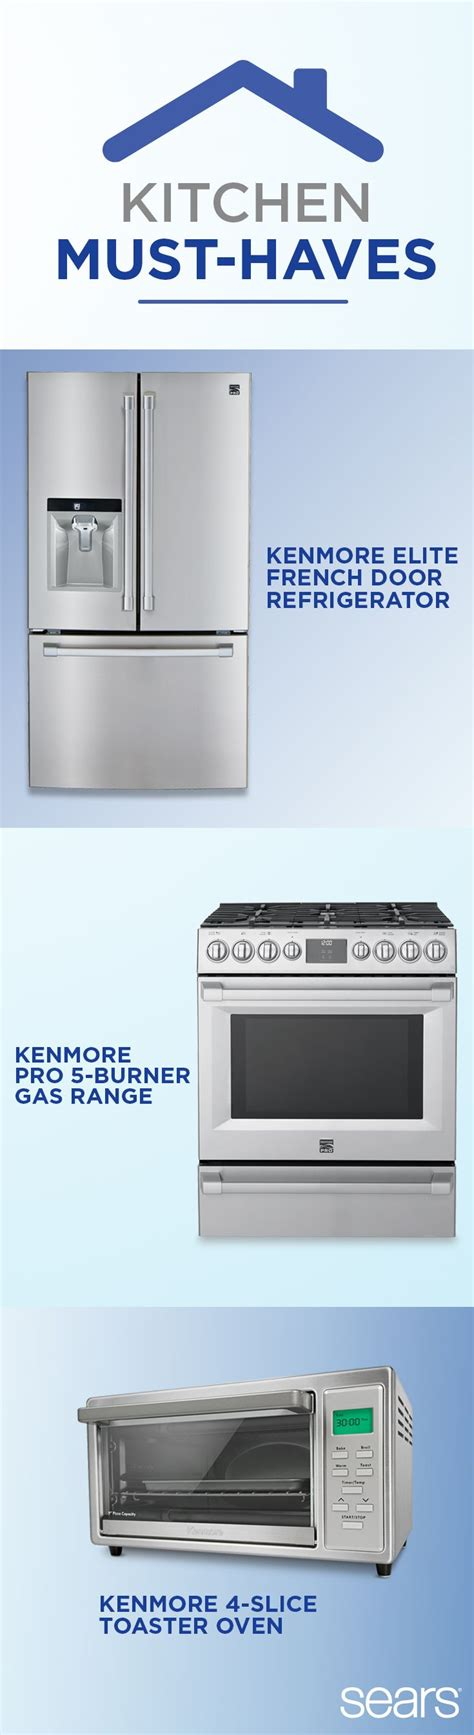 kenmore elite kitchen appliances 1000 ideas about modern toaster ovens on pinterest